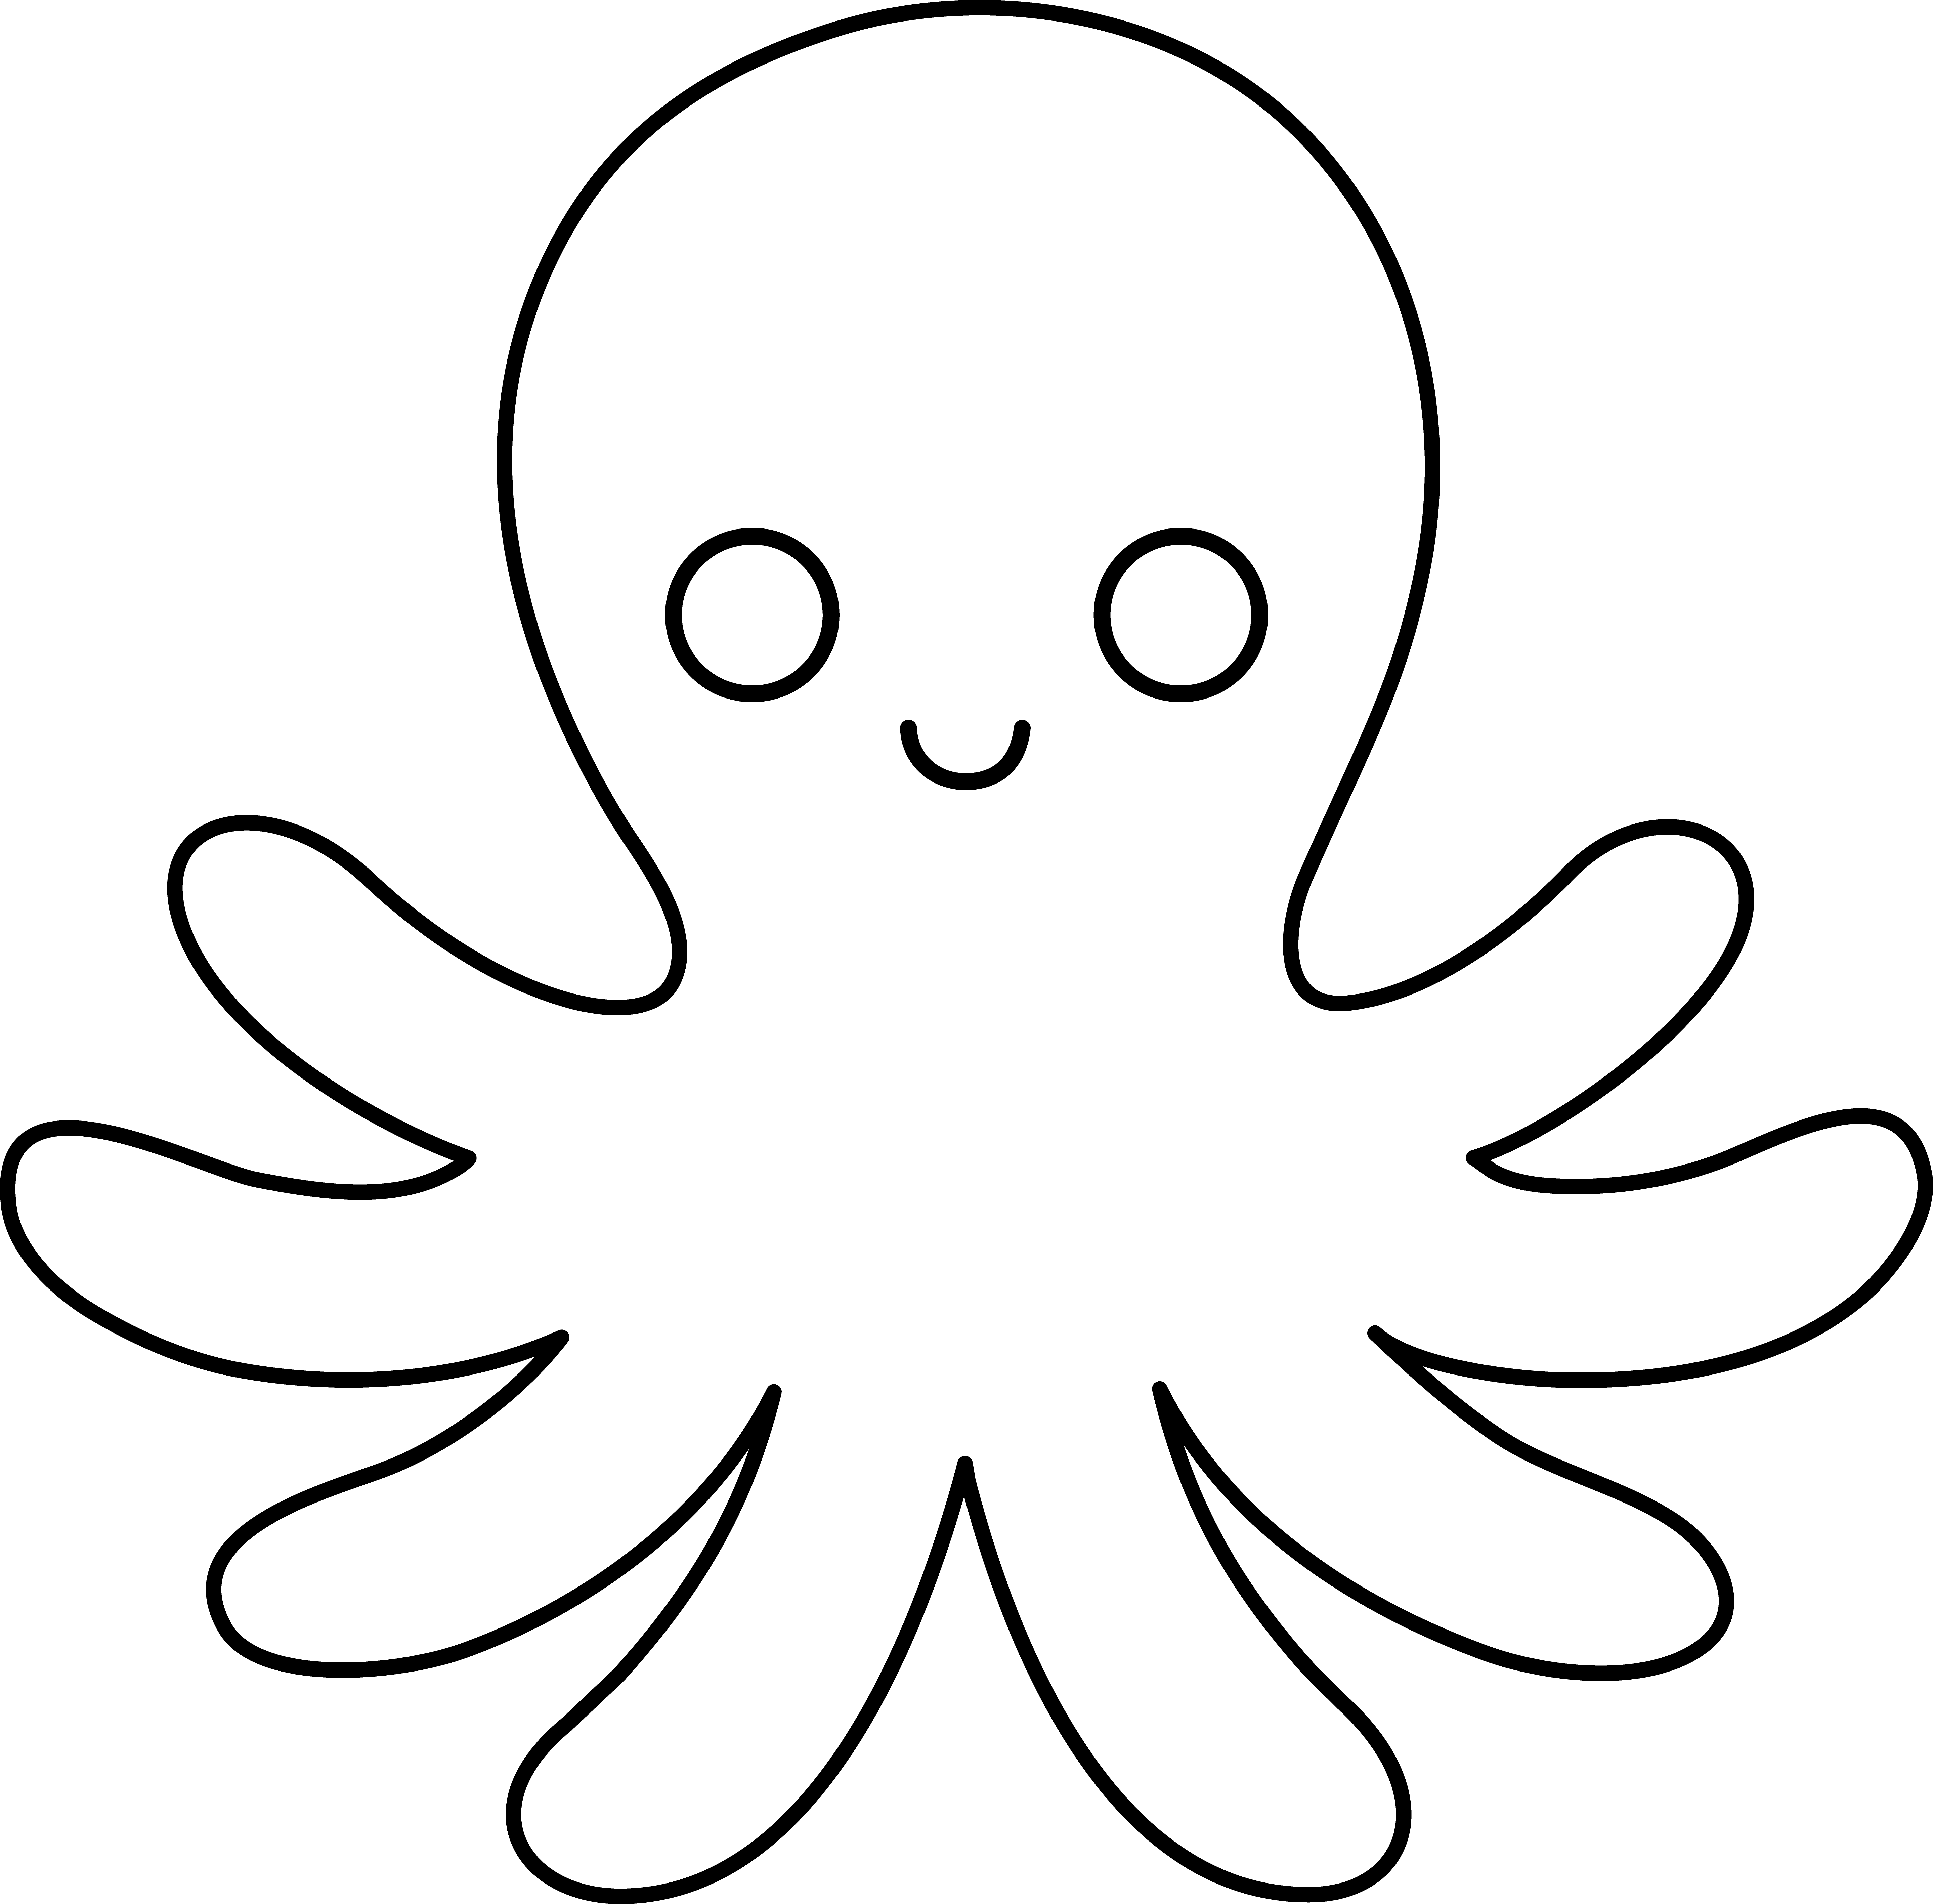 Octopus clipart mimic octopus. Black and white panda